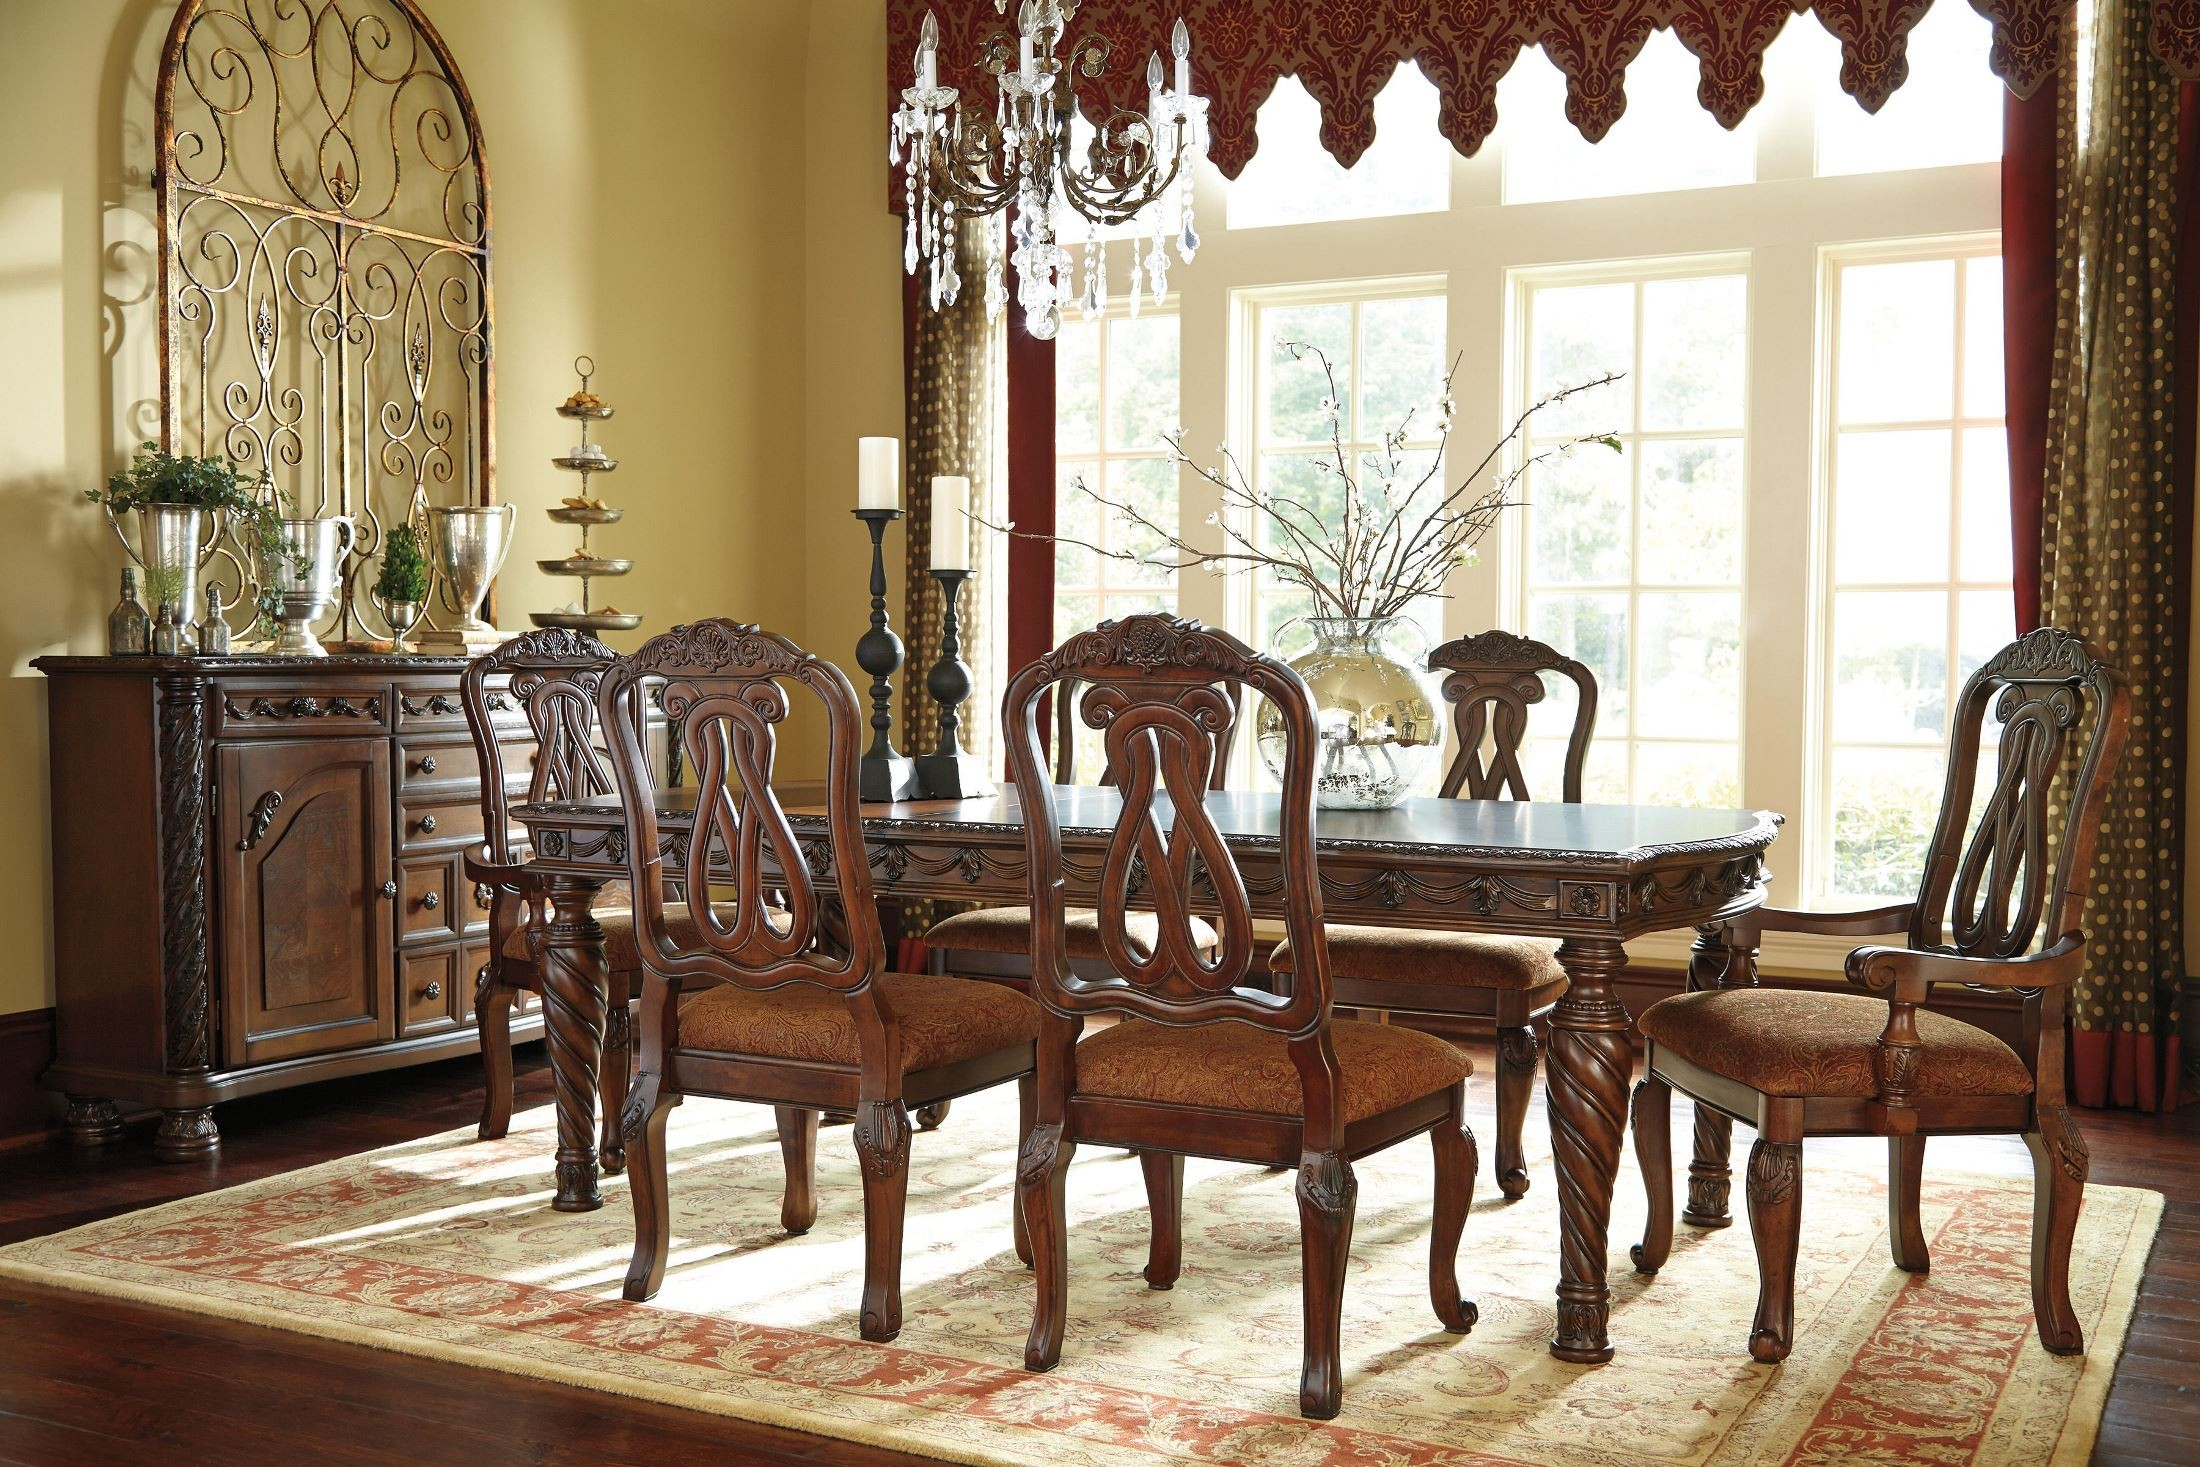 1697949 - Dining Room Set On Sale